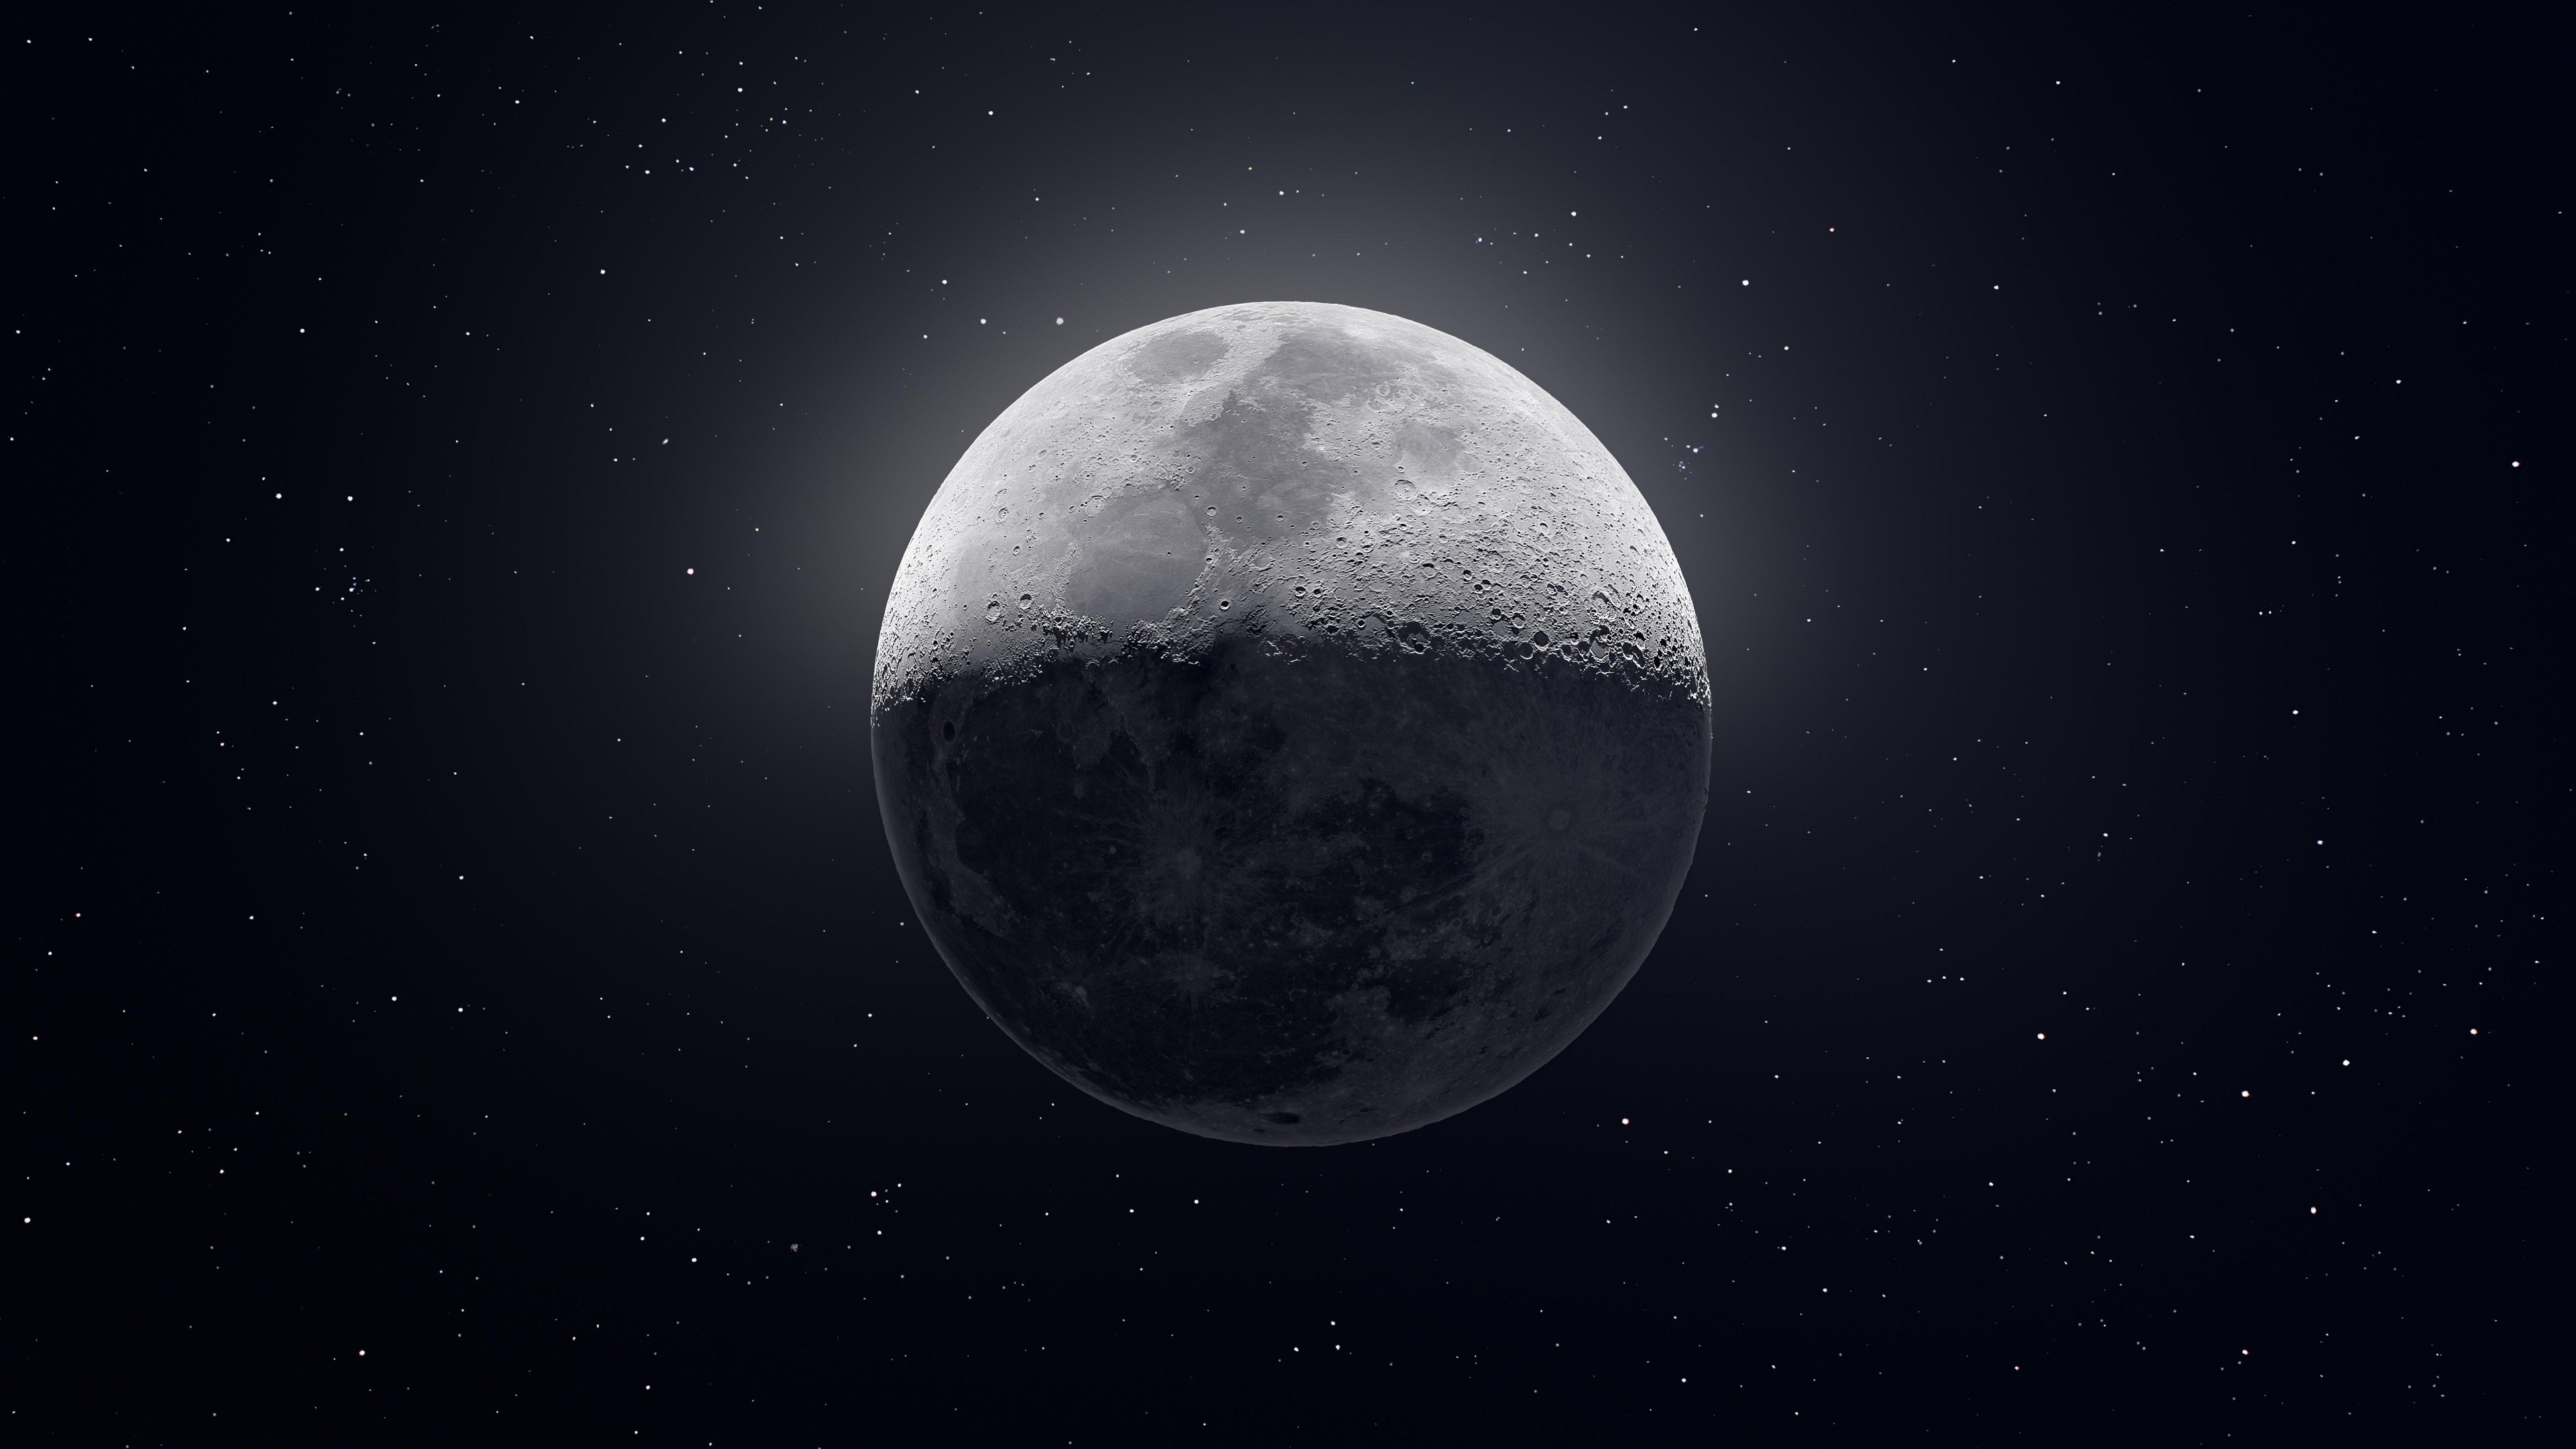 Moon HD Wallpaper 4K for Desktop